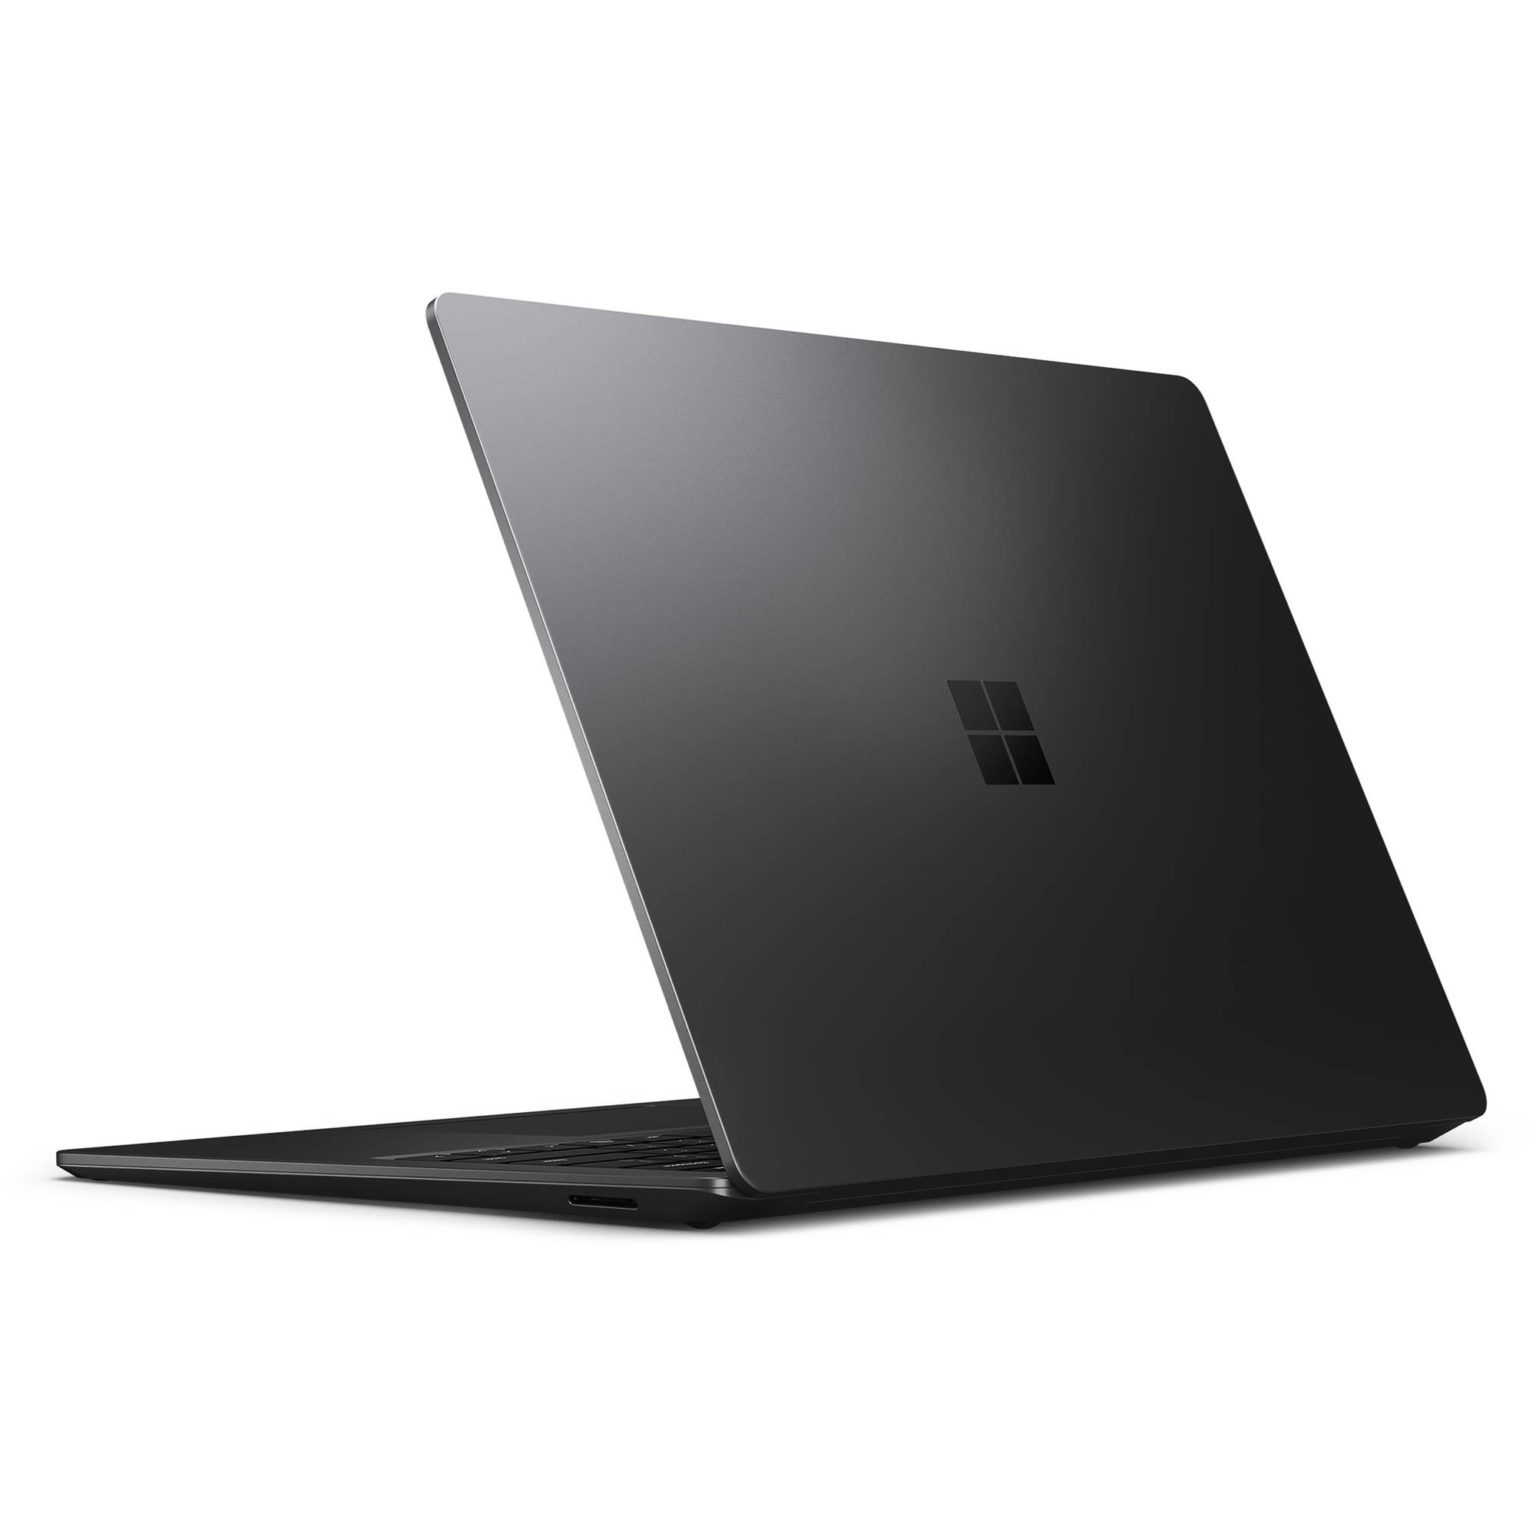 "Ноутбук Microsoft Surface Laptop 3 15"" (AMD Ryzen 5 3580U 2100 MHz/8GB/256GB) Black, Черный. Фото N3"